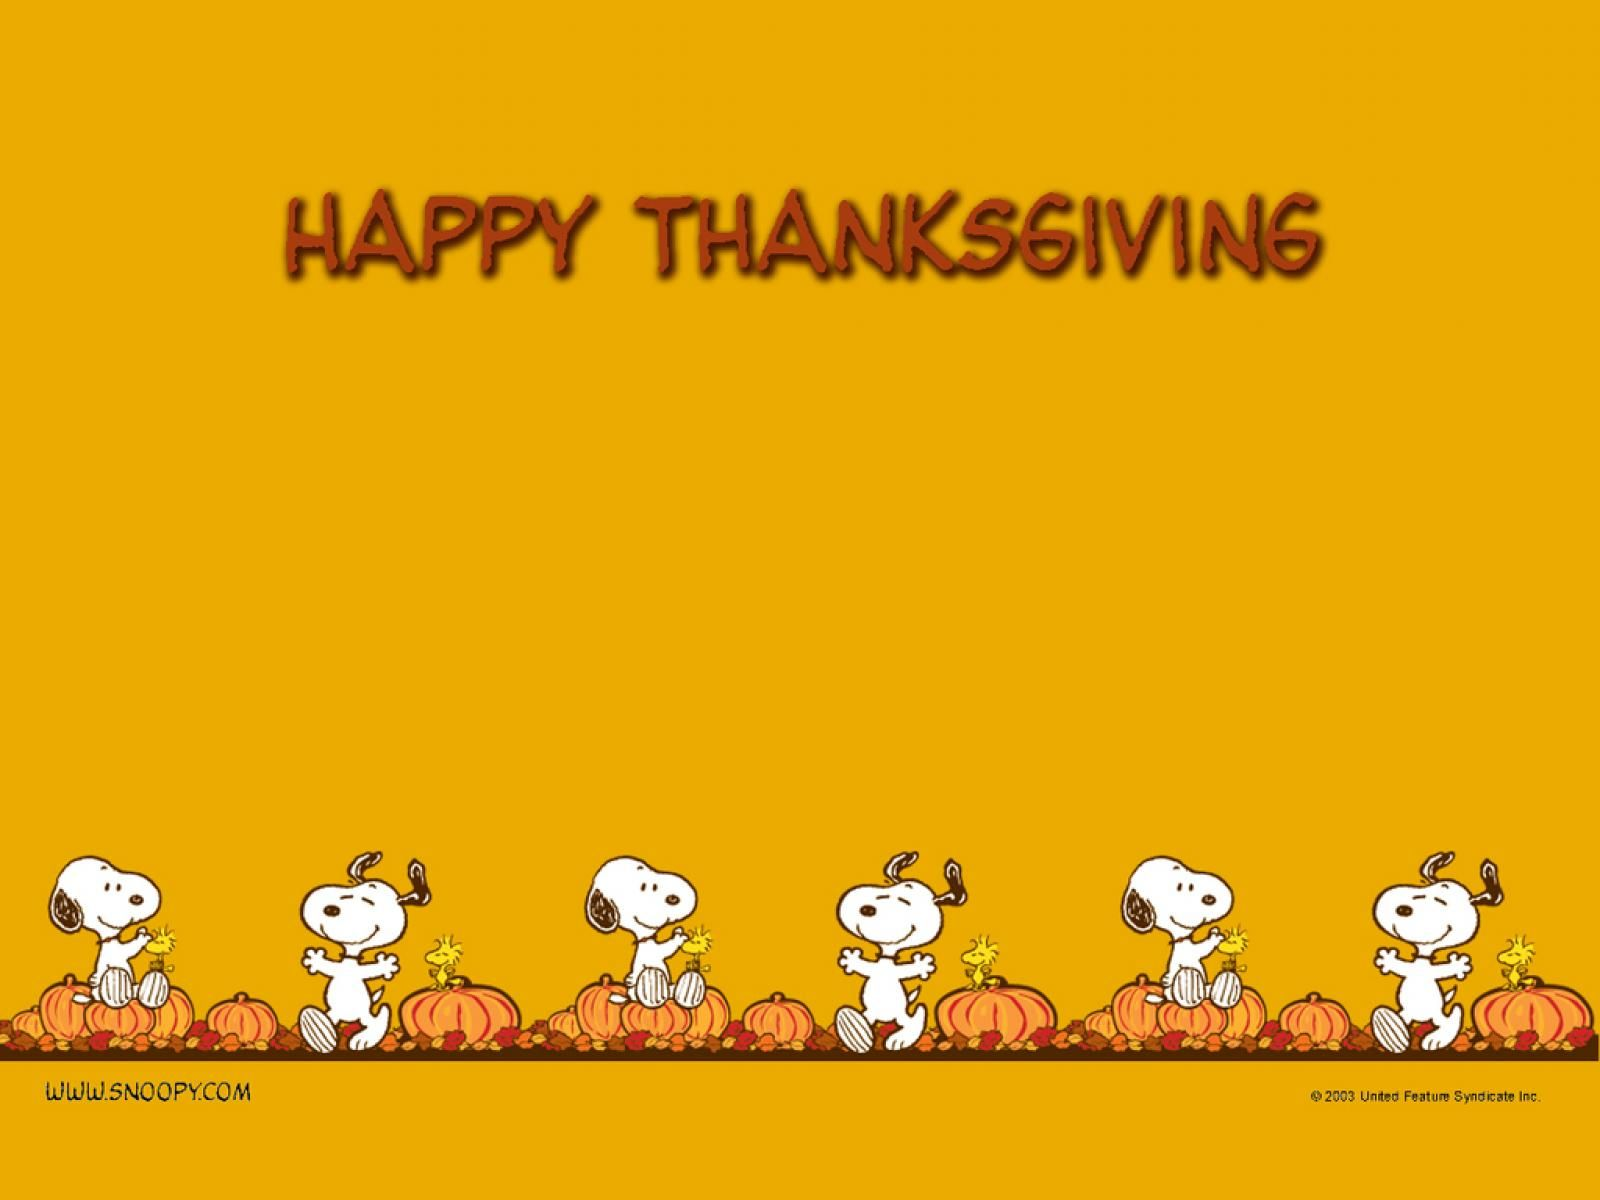 Charlie brown thanksgiving wallpapers thanksgiving day charlie brown thanksgiving wallpapers voltagebd Gallery